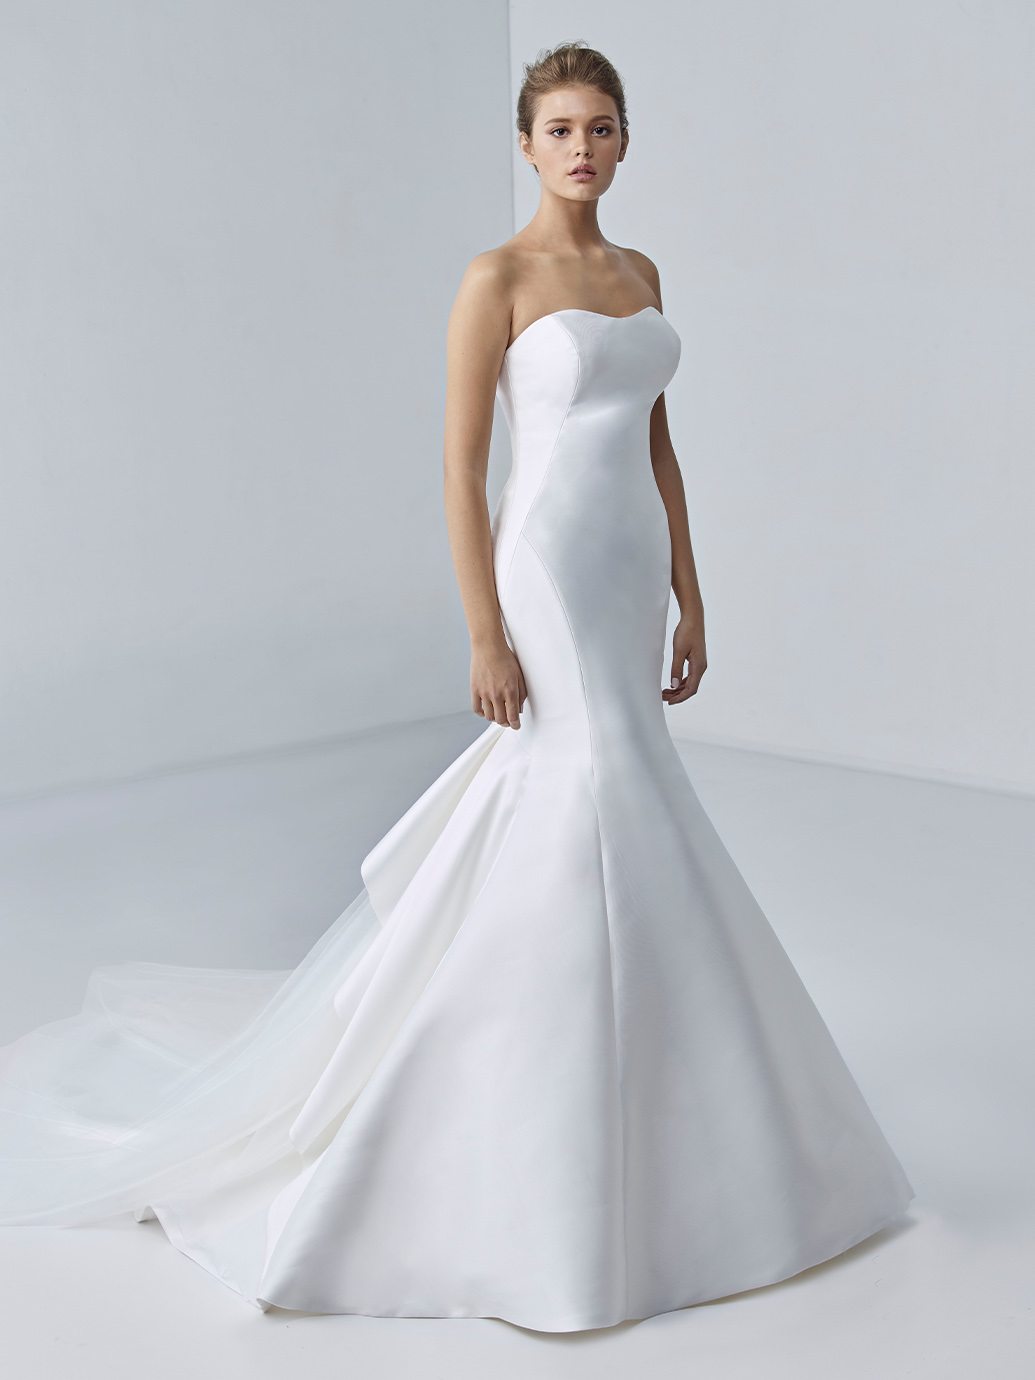 étoile-by-enzoani-2021-Dress-Finderétoile-by-enzoani-2021-Dress-Finder-Adeline